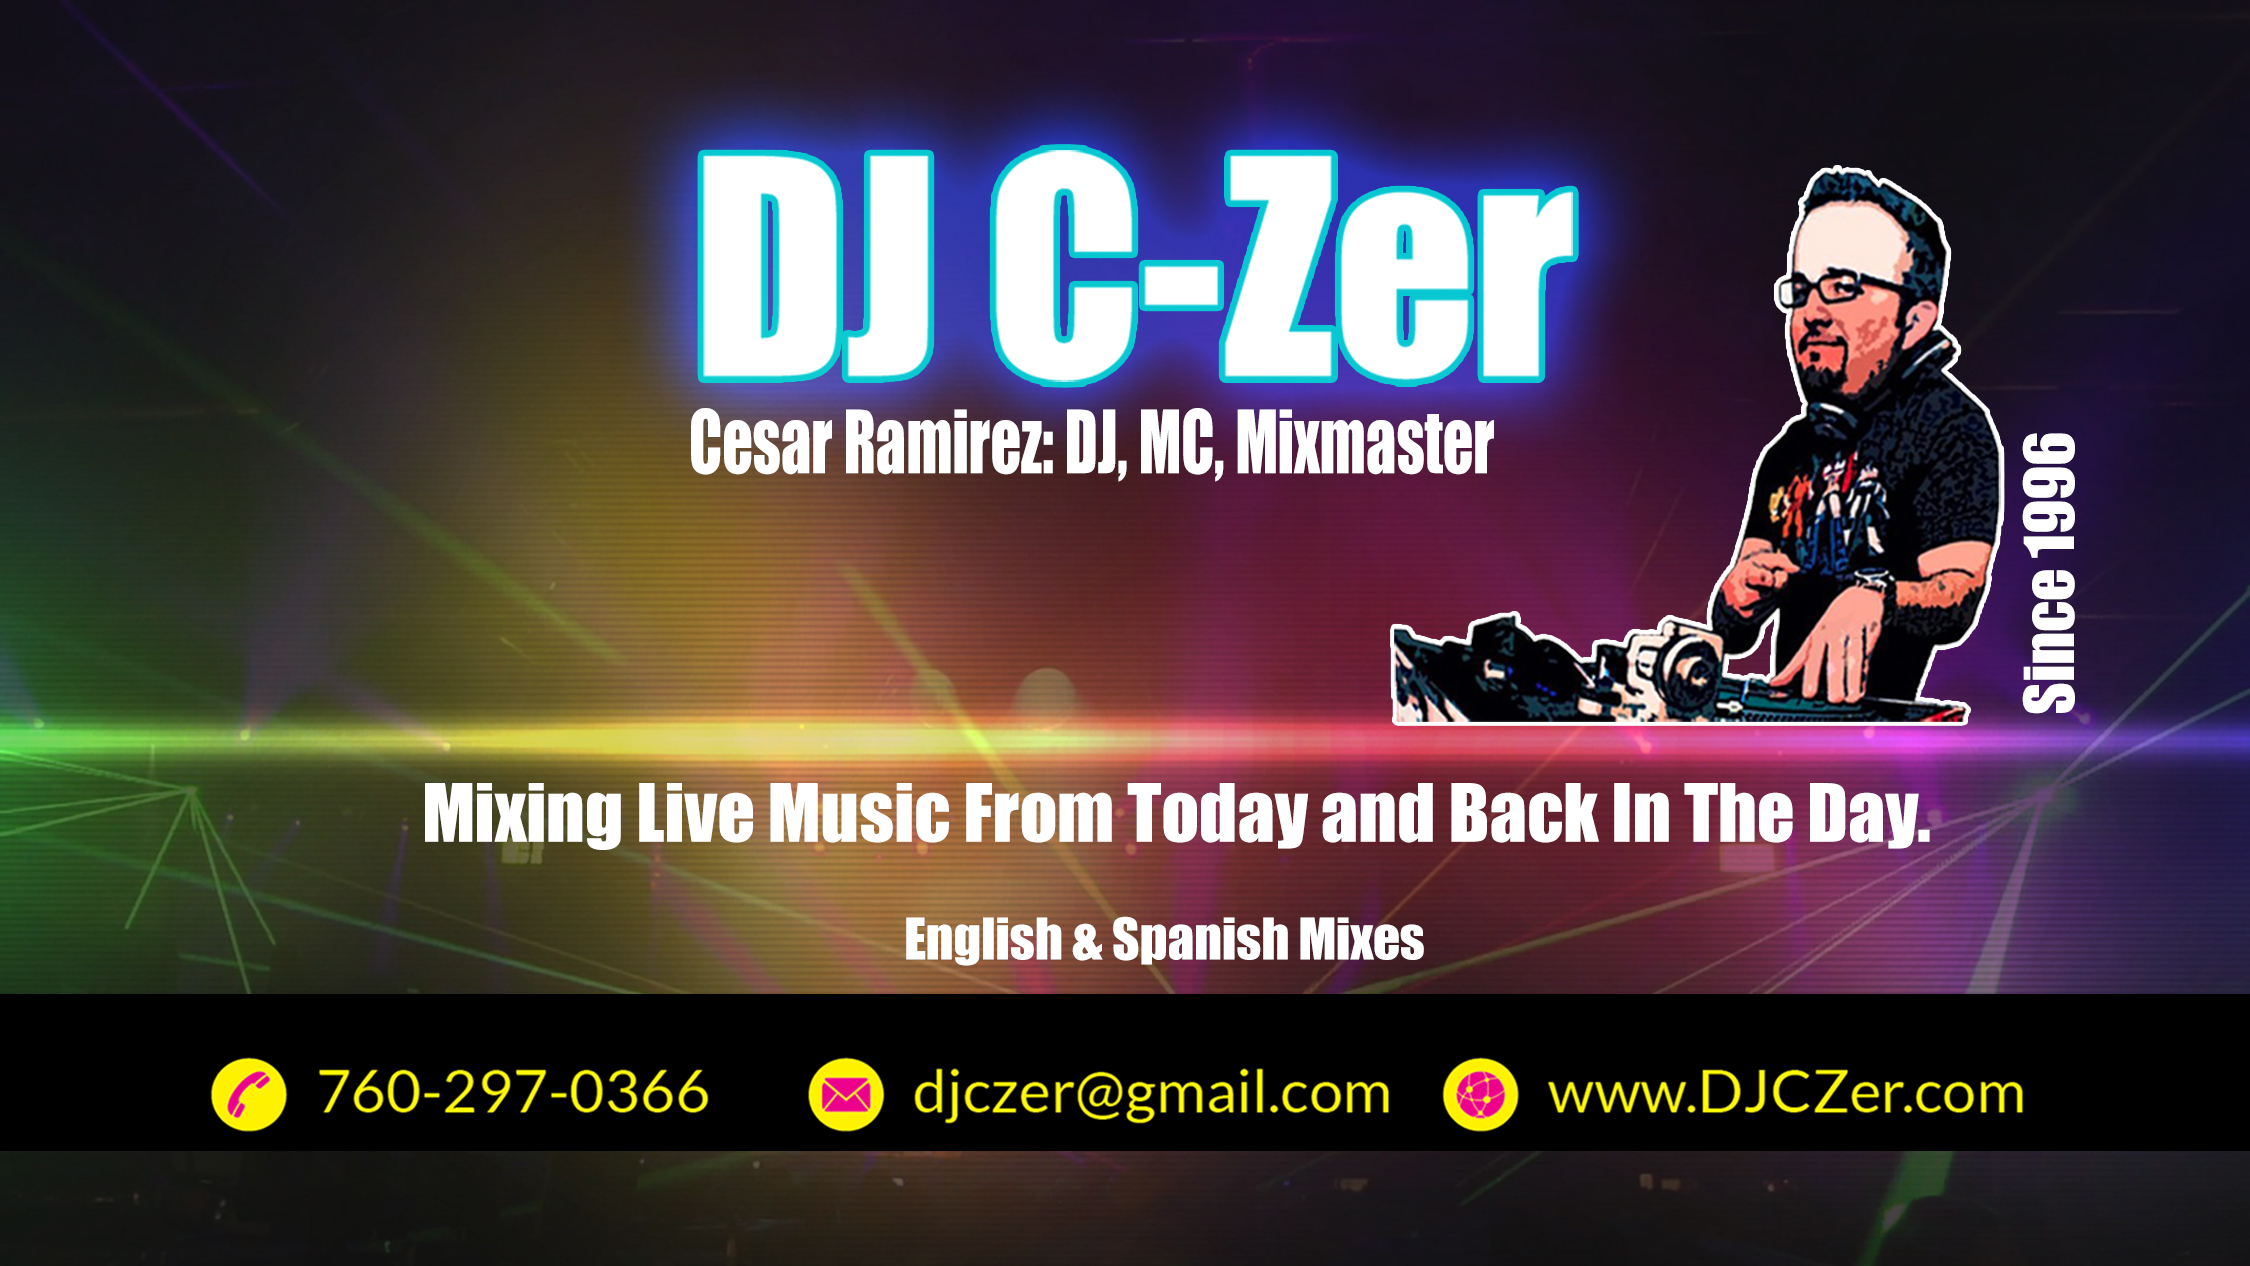 DJ C-Zer 2016 Business Cards